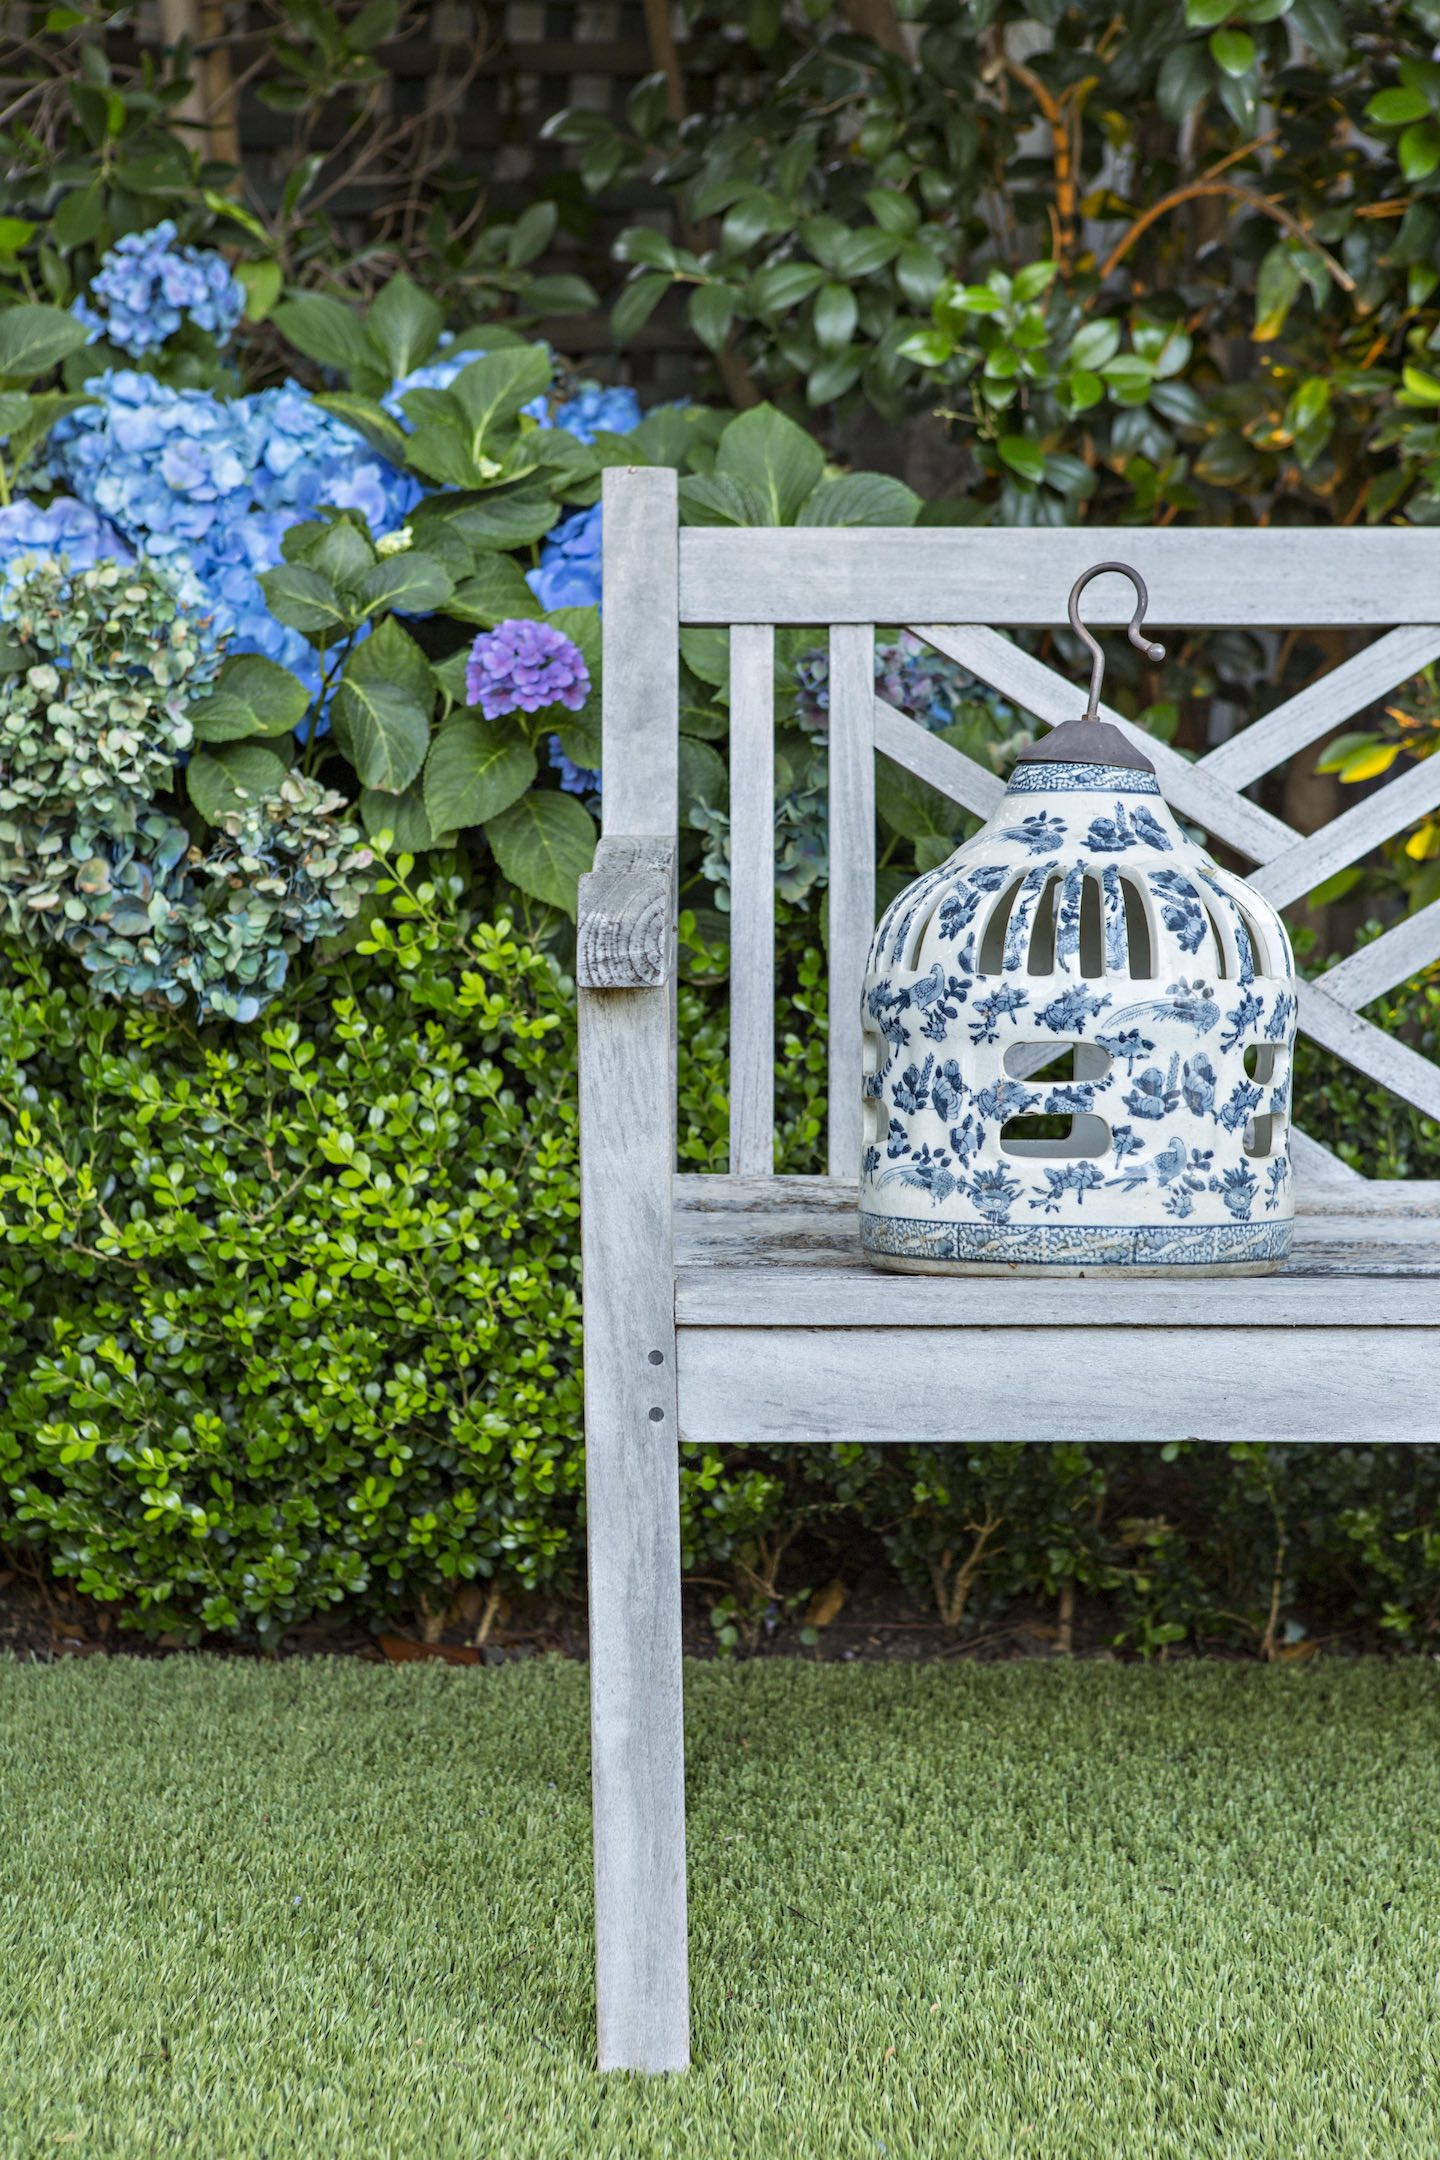 wooden garden bench with blue and white ceramic lantern